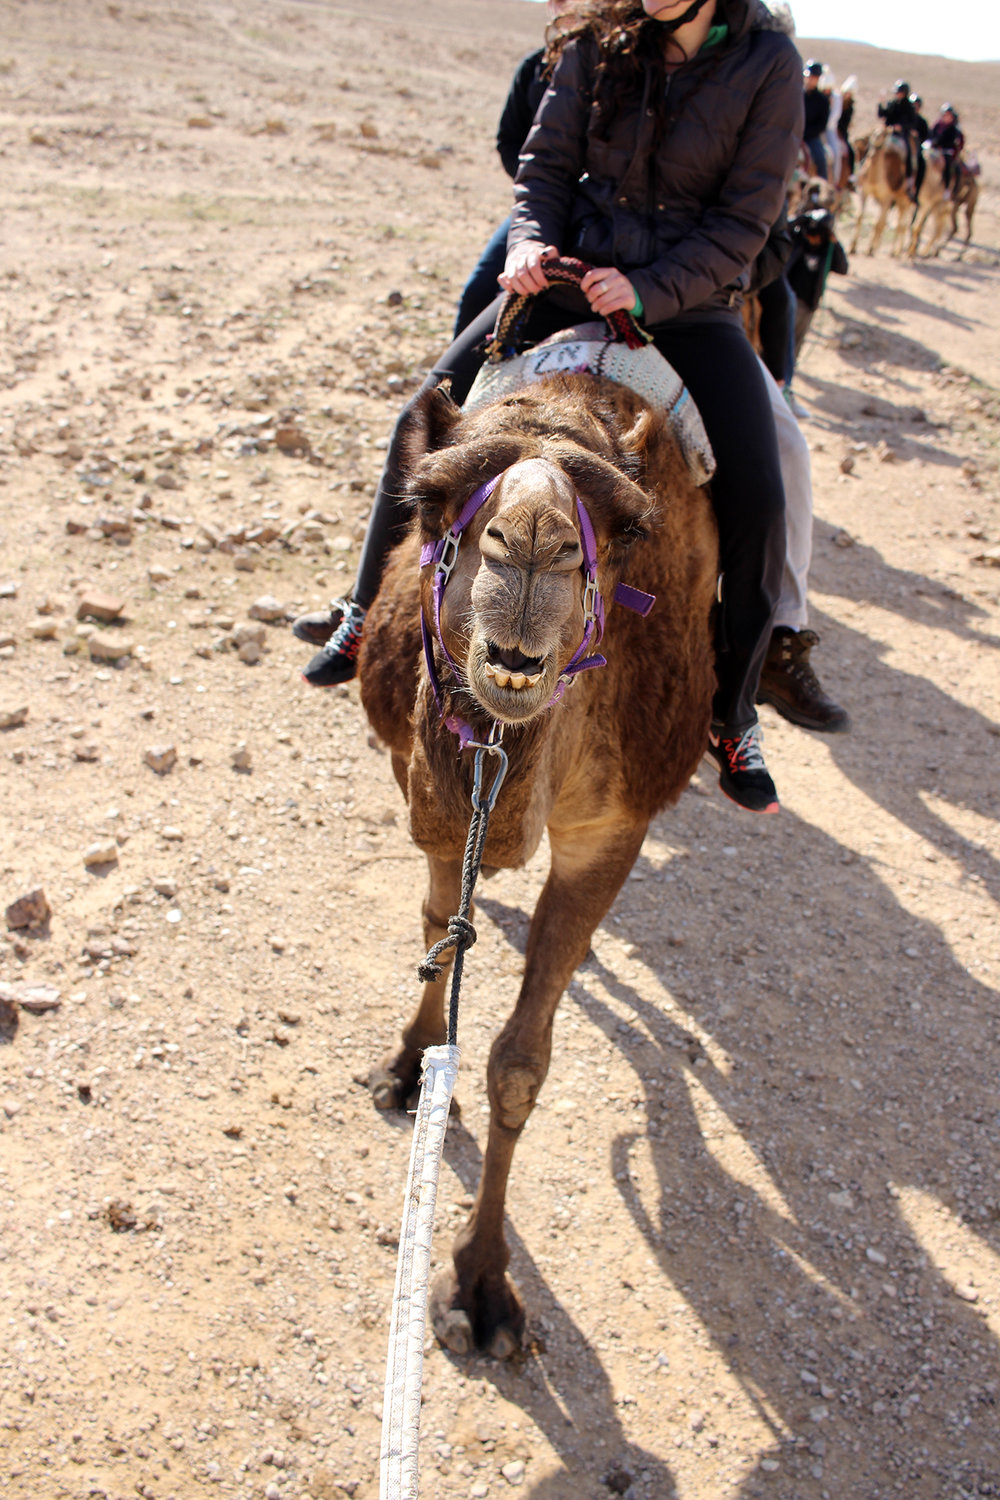 Camel ride through the Negev Desert, Israel. Travel photography by Geena Matuson @geenamatuson #thegirlmirage.